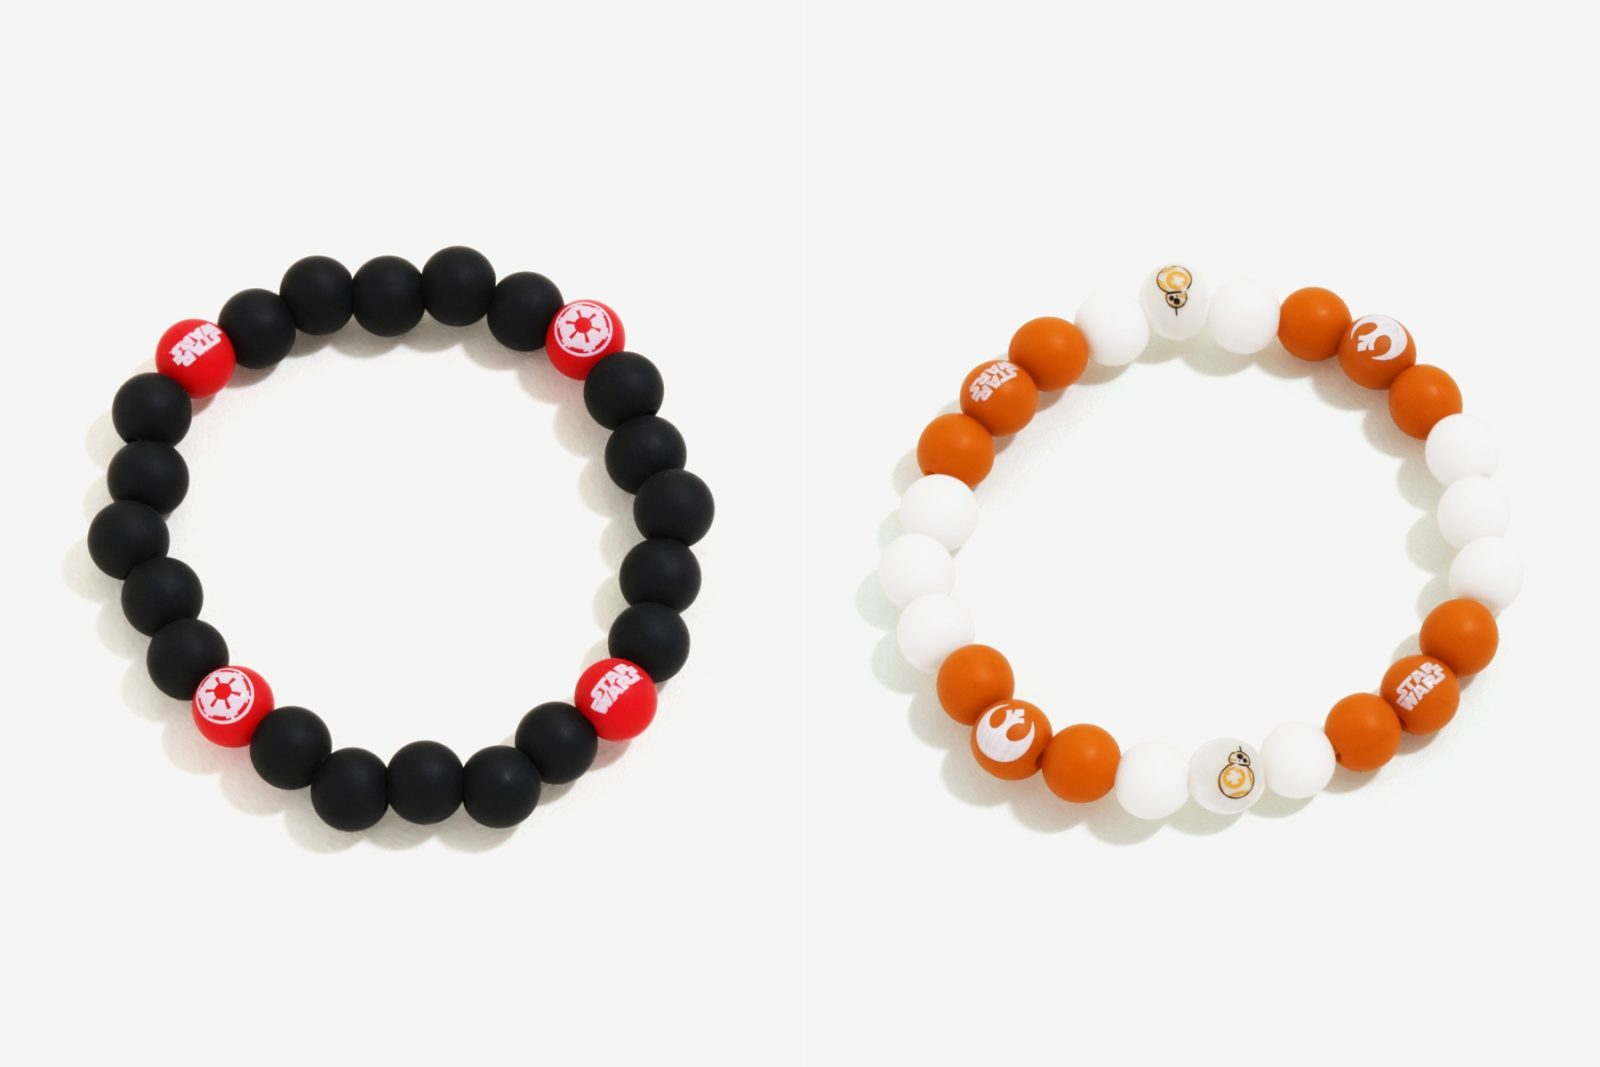 Star Wars Silicone Bead Braclets at Box Lunch